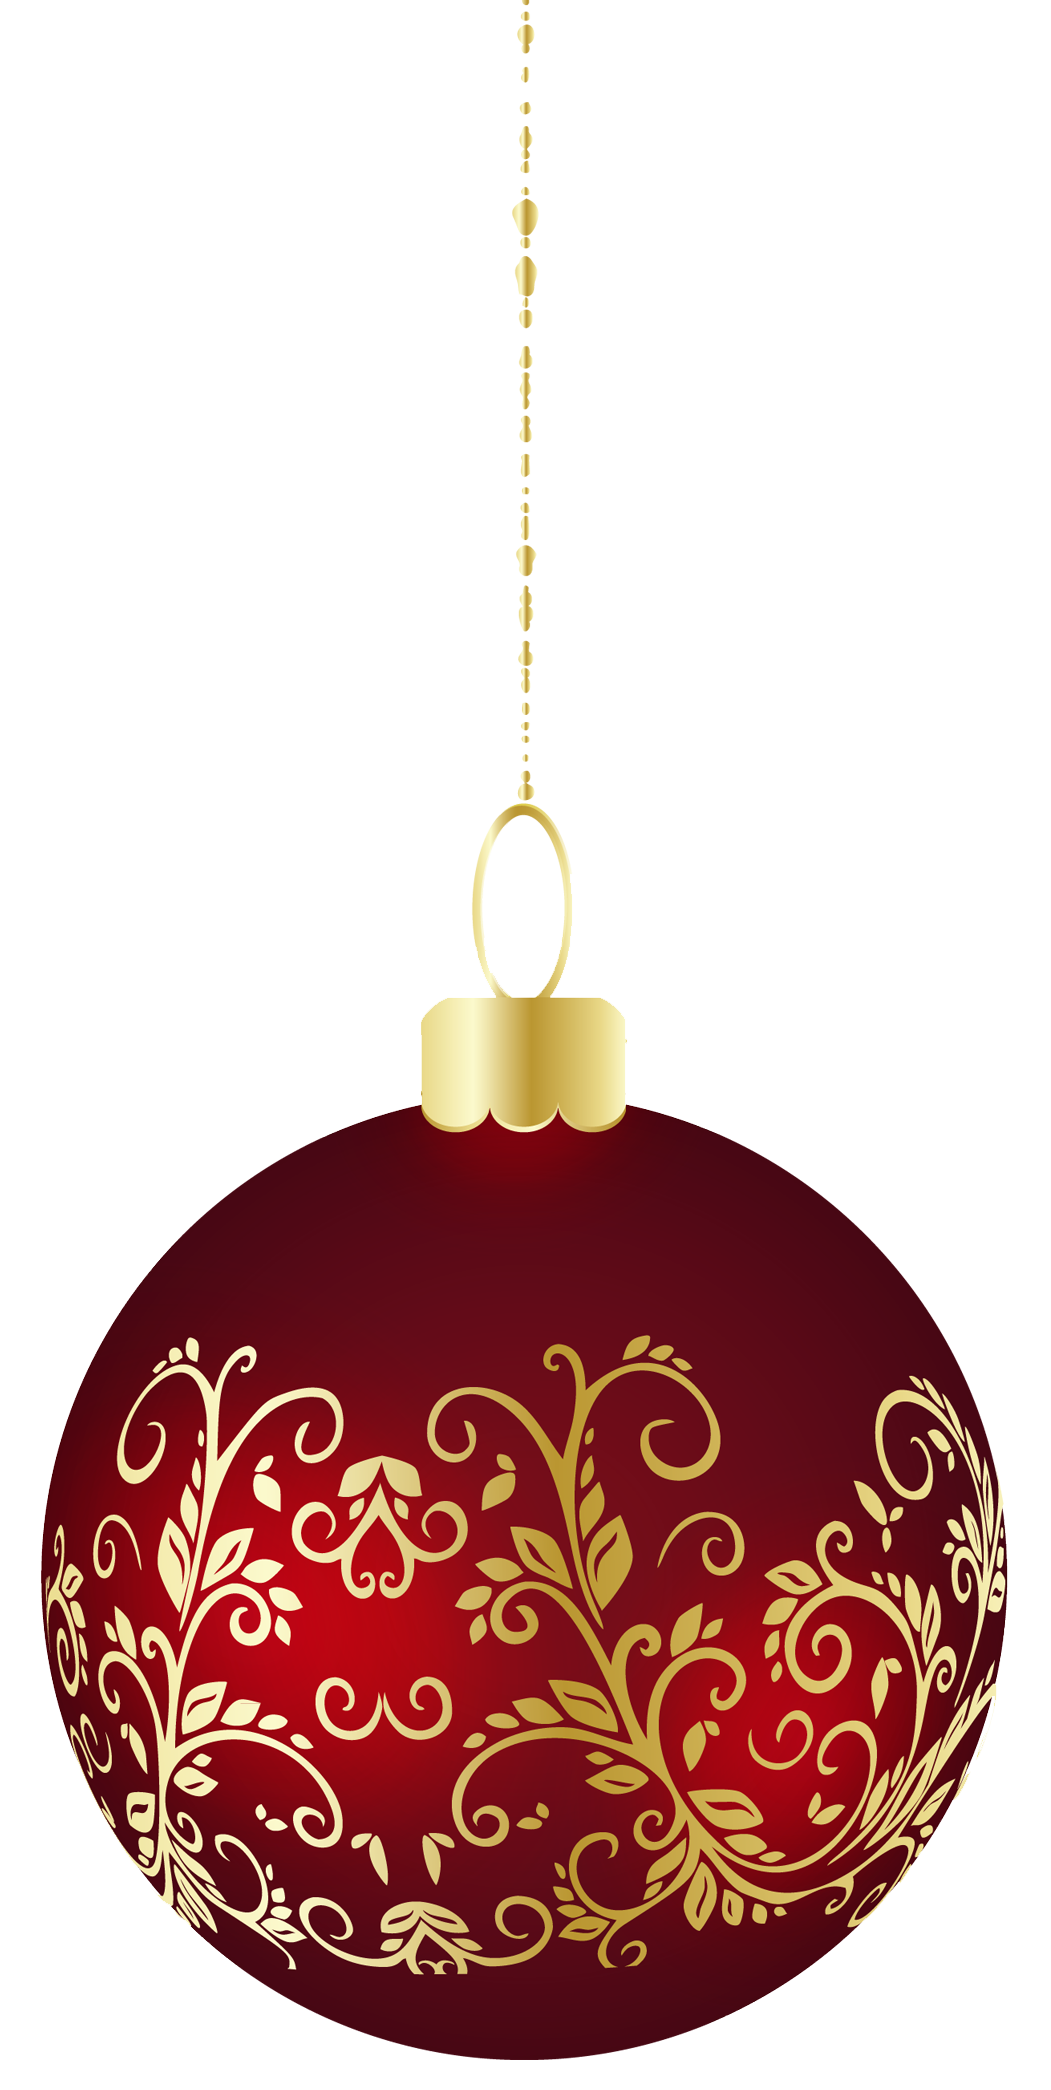 Christmas ball ornament png. Large transparent clipart chimes